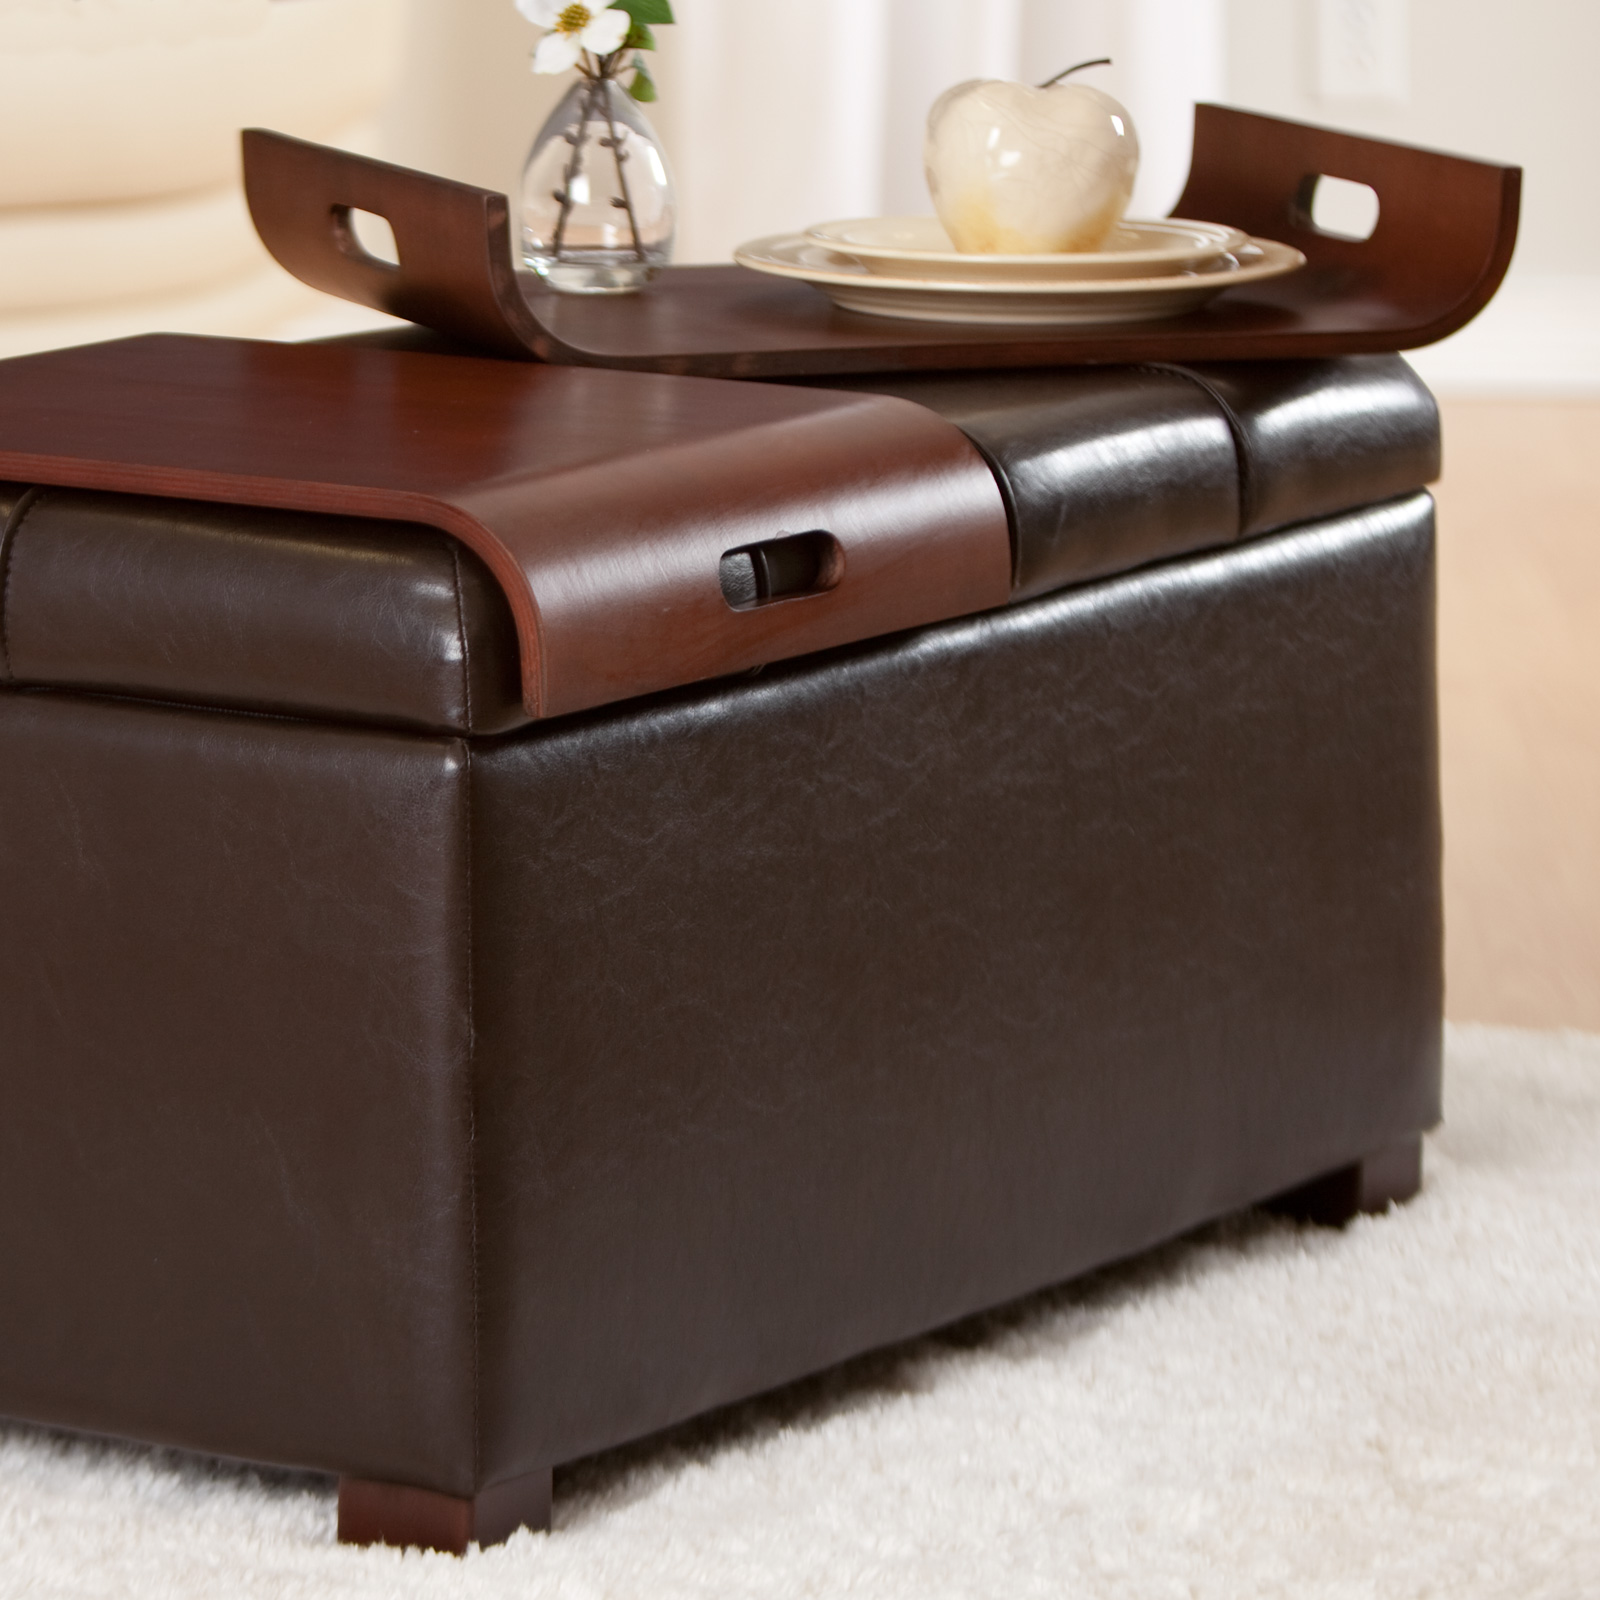 Livingston Storage Ottoman With Tray Table At Hayneedle